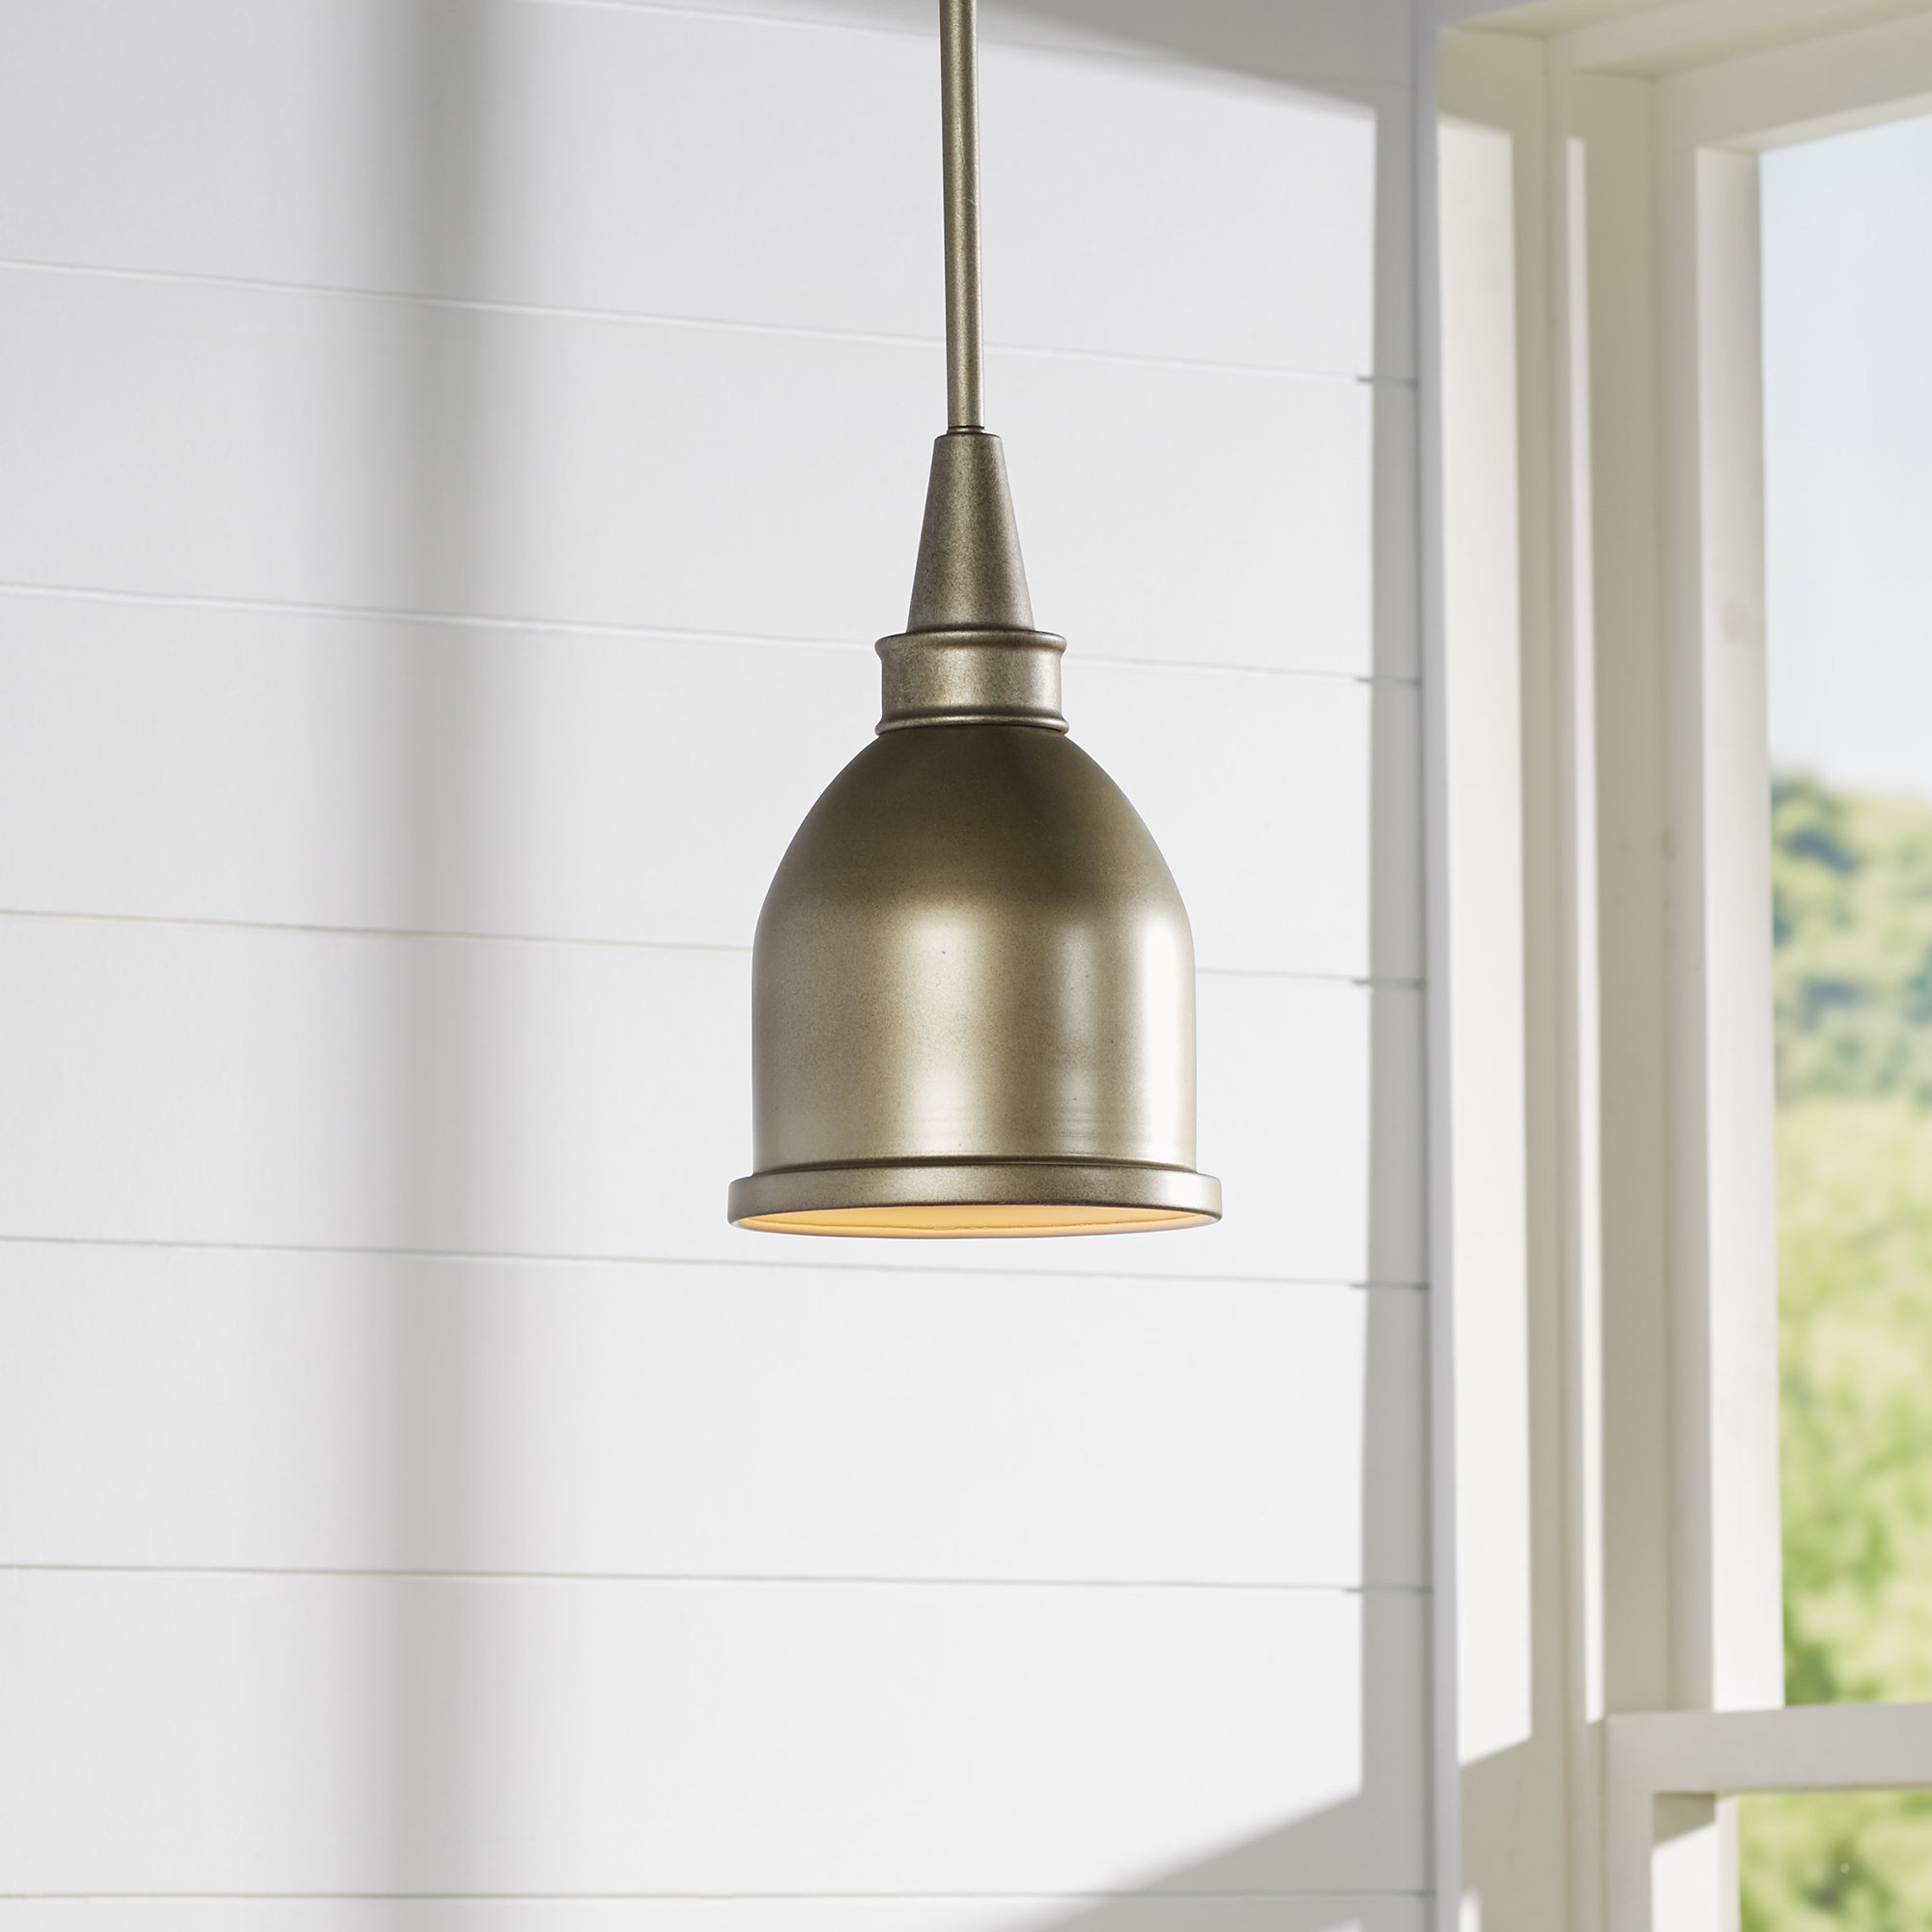 Widely Used Manston 1 Light Single Bell Pendant Intended For Erico 1 Light Single Bell Pendants (View 20 of 20)